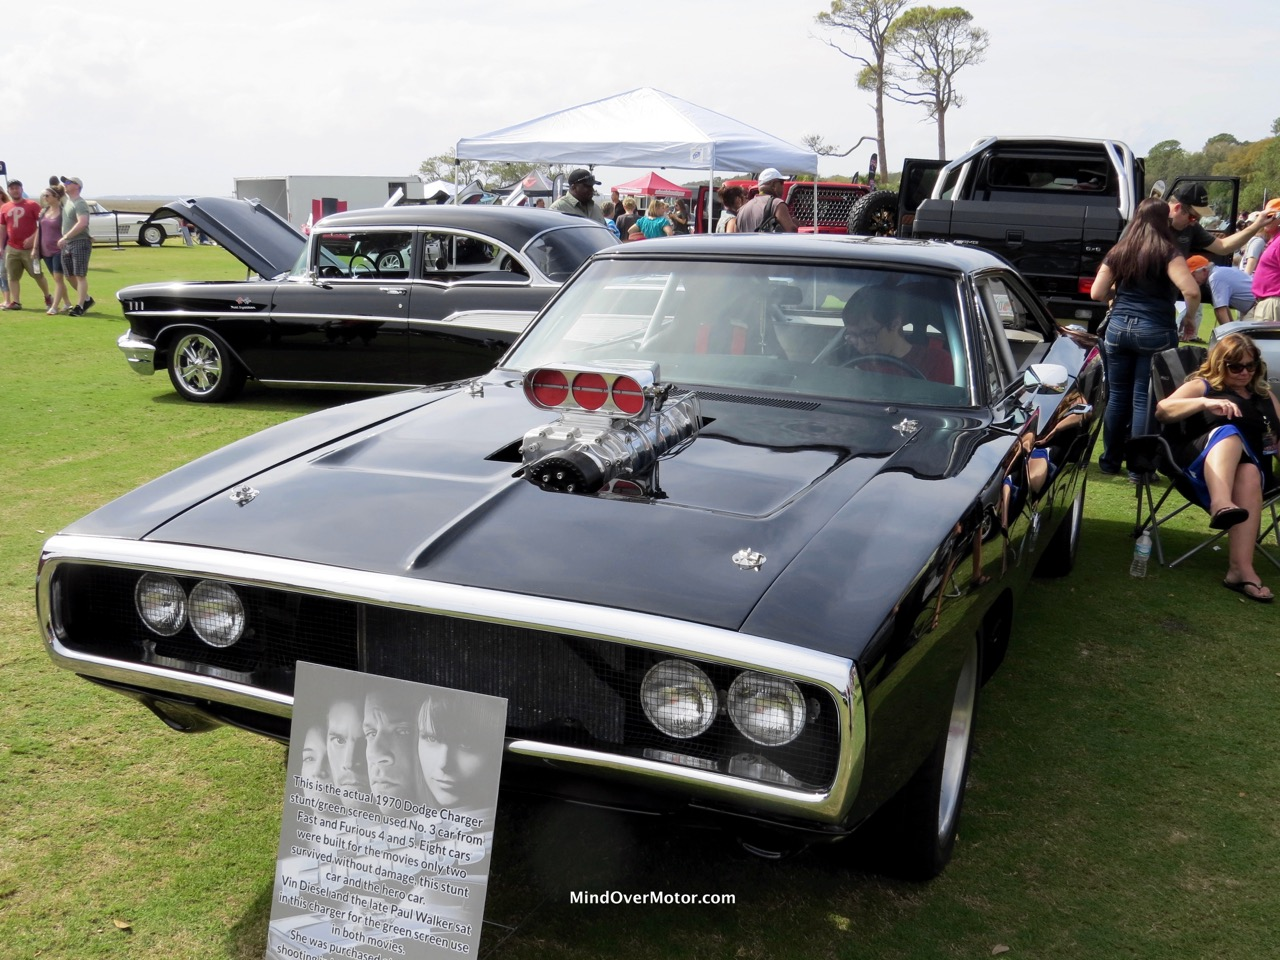 Fast And Furious 1 Cars: Fast And Furious 4/5 Dodge Charger At The 2016 Amelia